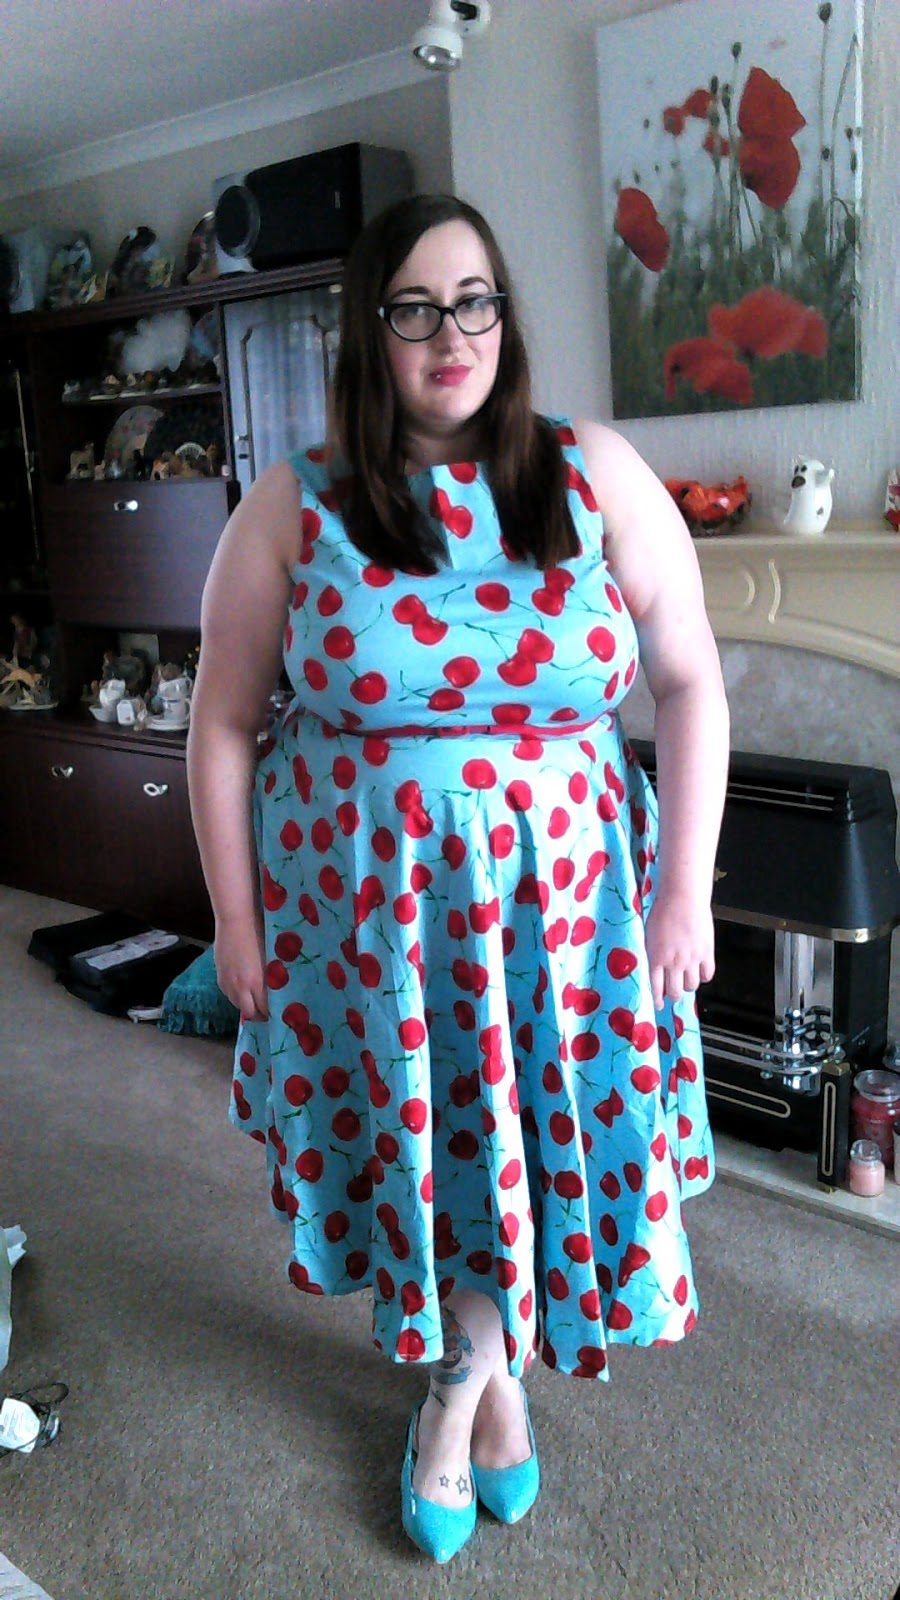 fat plus size girl bbw (size 20/22) wearing a queen of holloway cherry dress